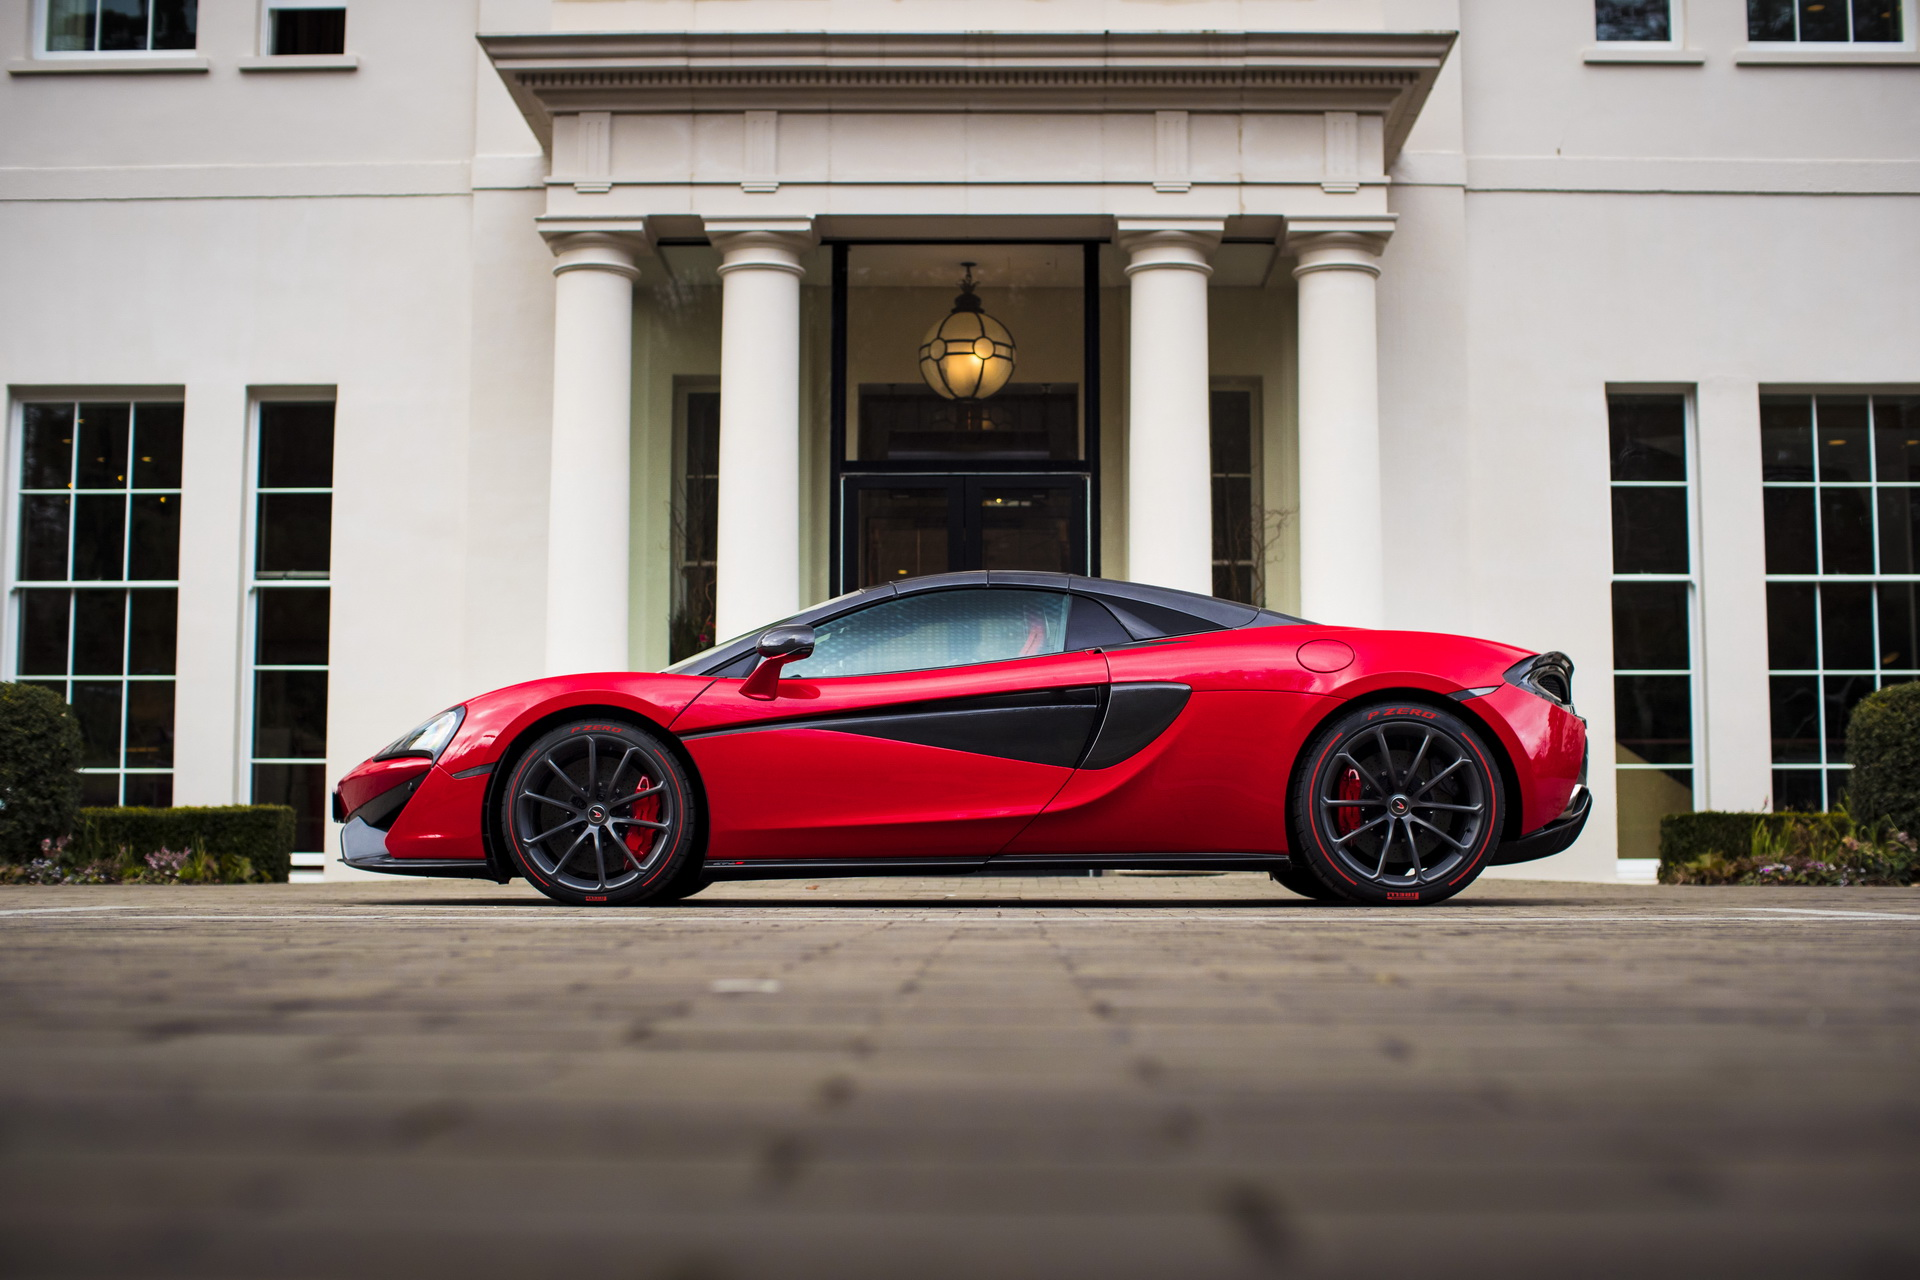 mclaren-570s-spider-vermillion-red-9